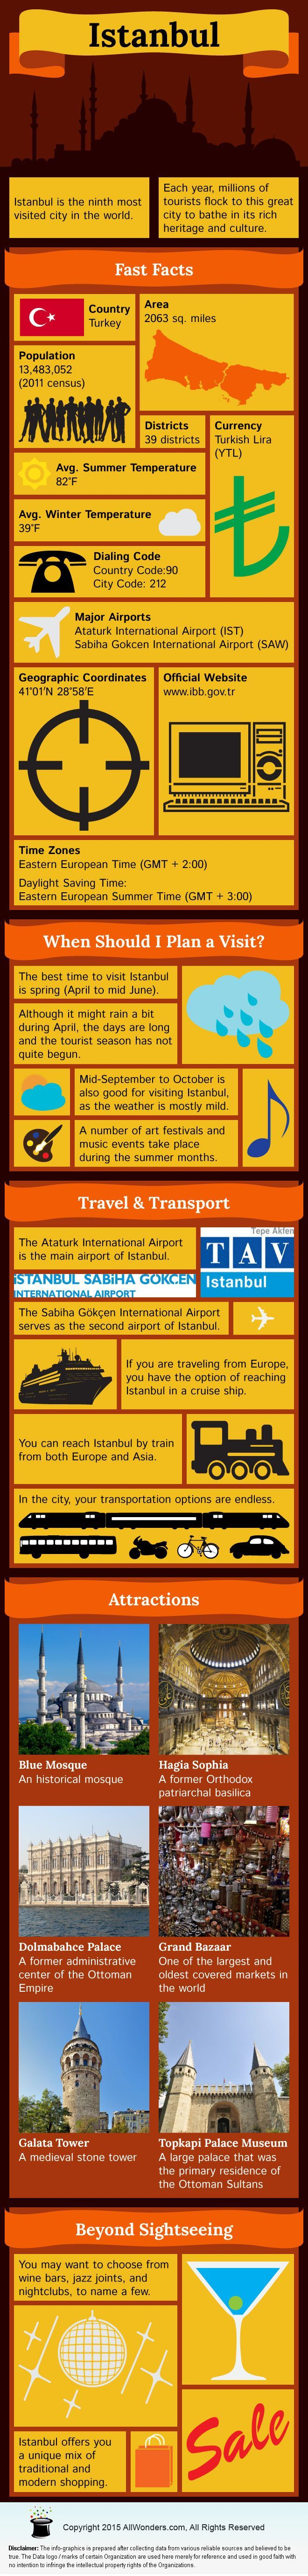 The Istanbul infographic shows details about the city of Istanbul in Turkey. Get information like fast facts, when to visit, weather, places to visit, hotels, restaurants, things to do, transportation and much more about Istanbul via infographics.